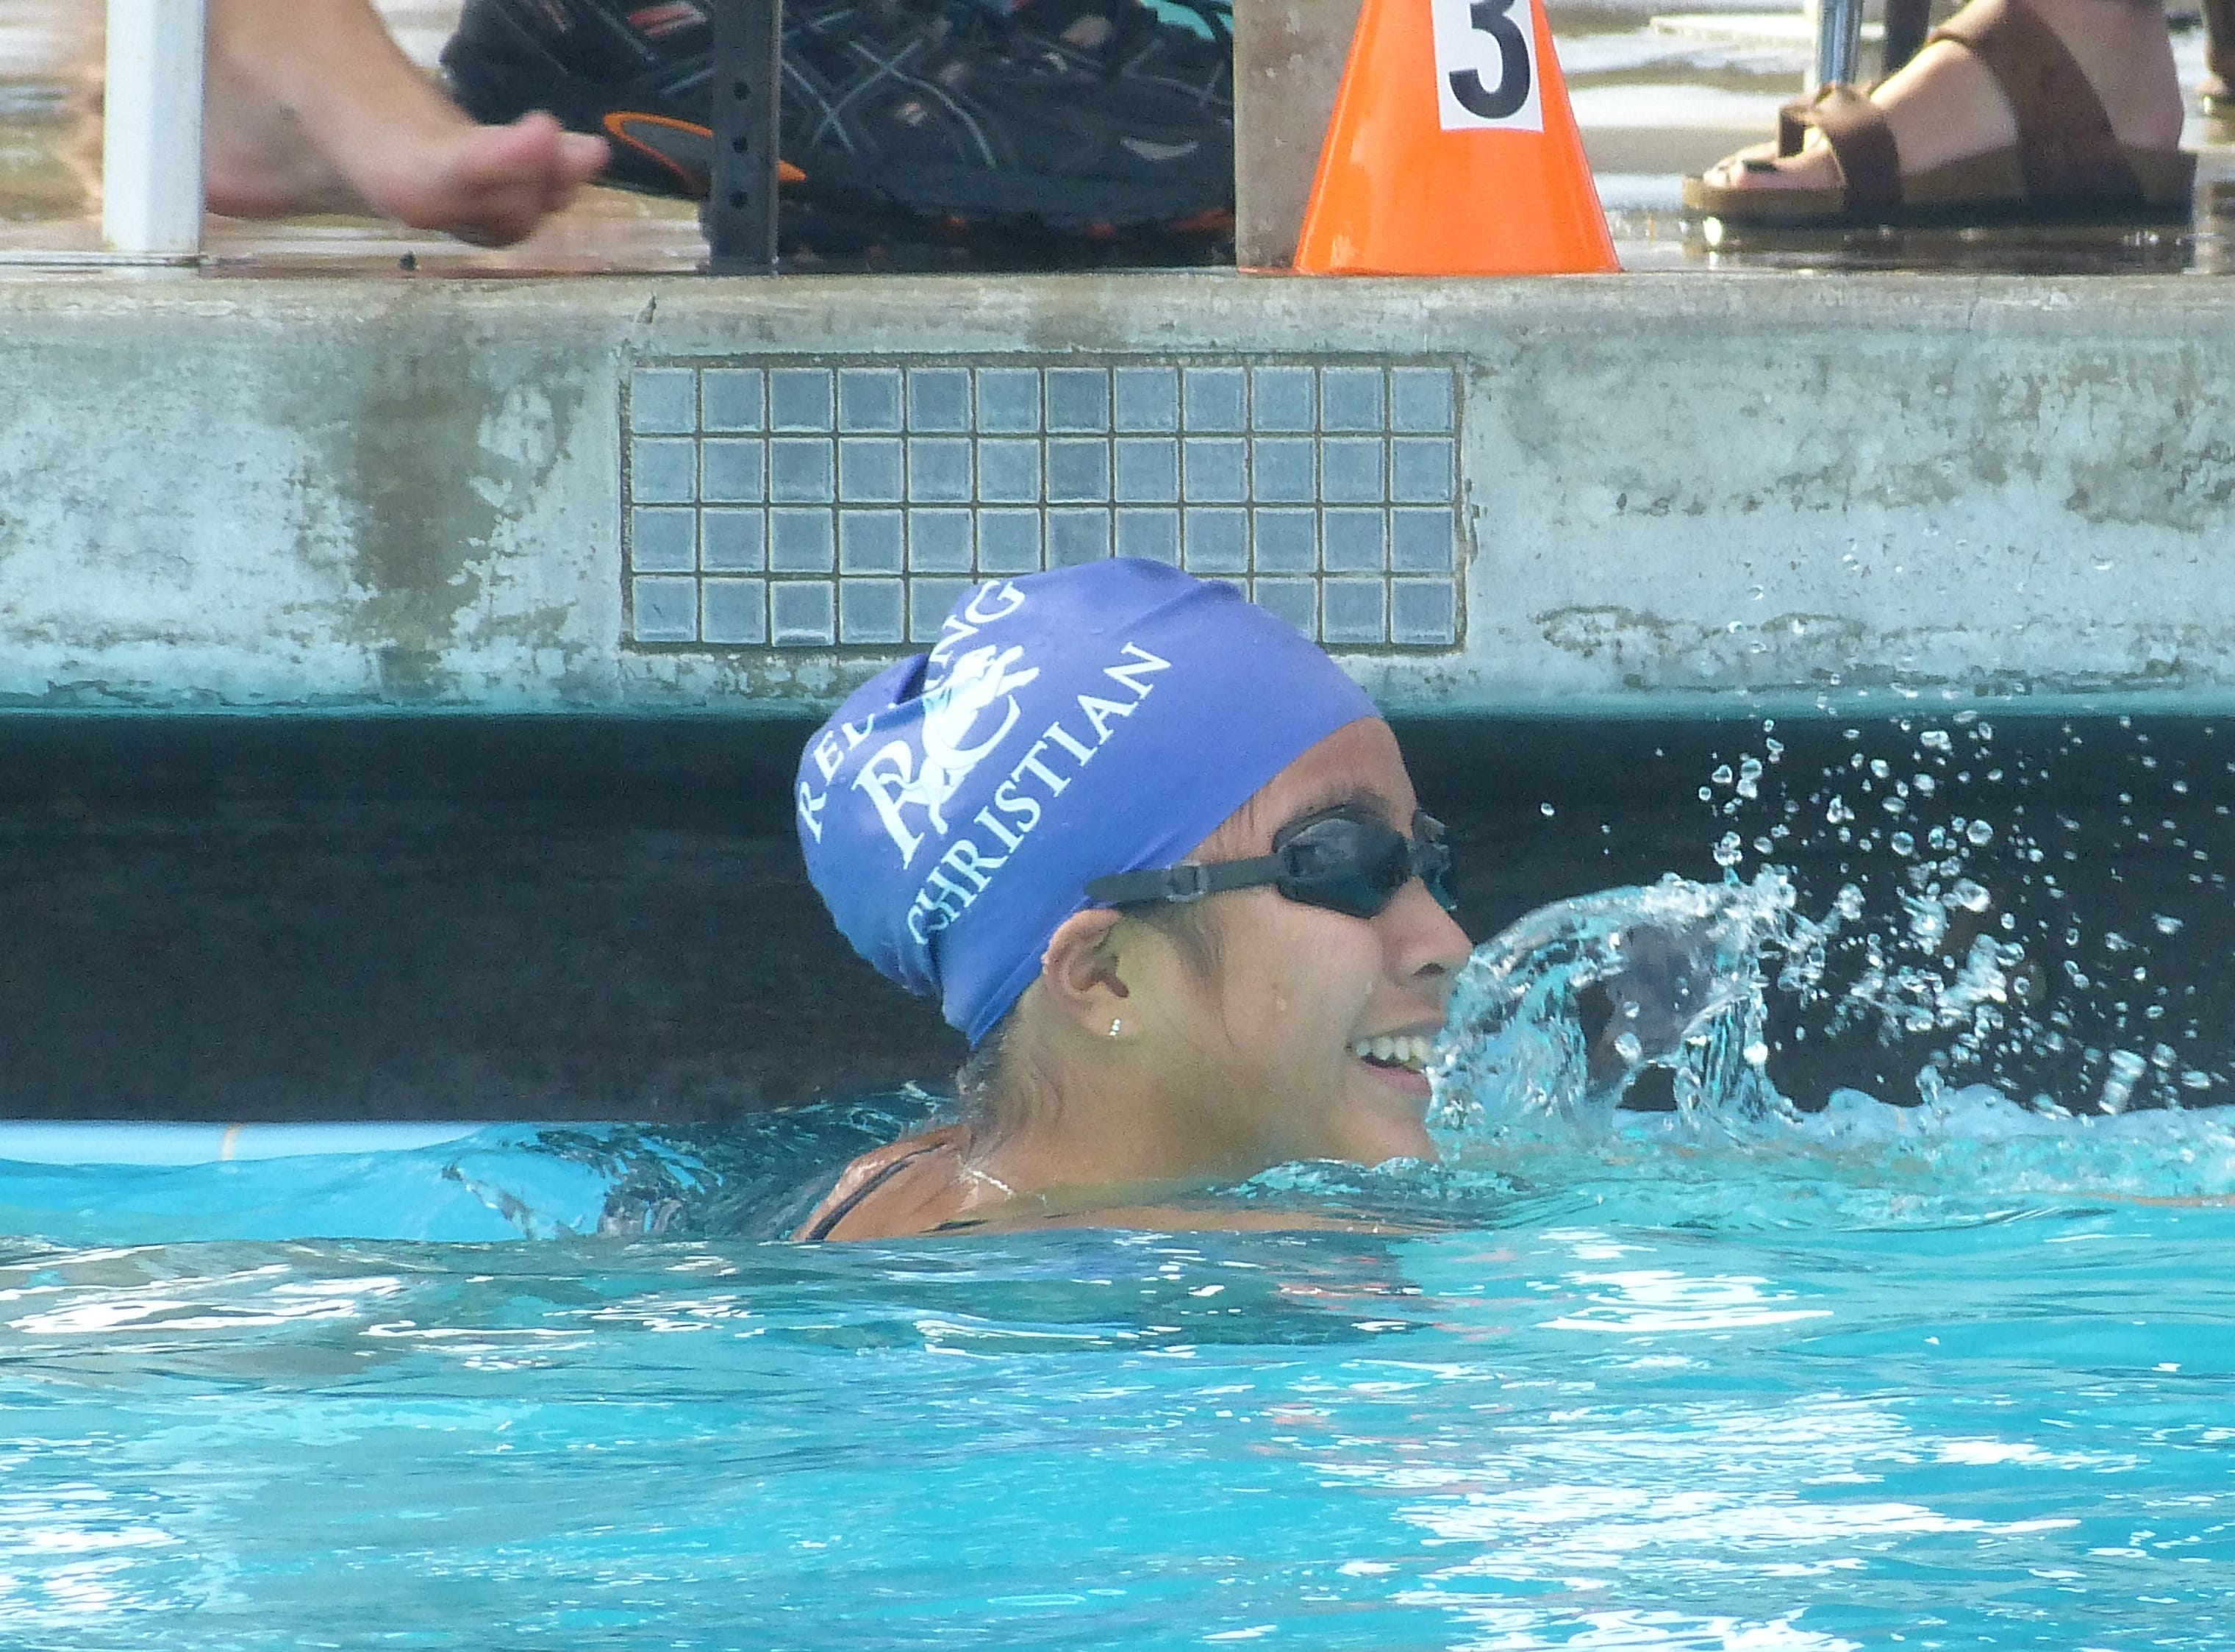 Katherine Sze of Redding Christian looks to shake hands with an opponent after swimming in the 100-yard freestyle Wednesday at the NSCIF trials for Division 2 schools at West Valley High School on Oct. 24, 2018.